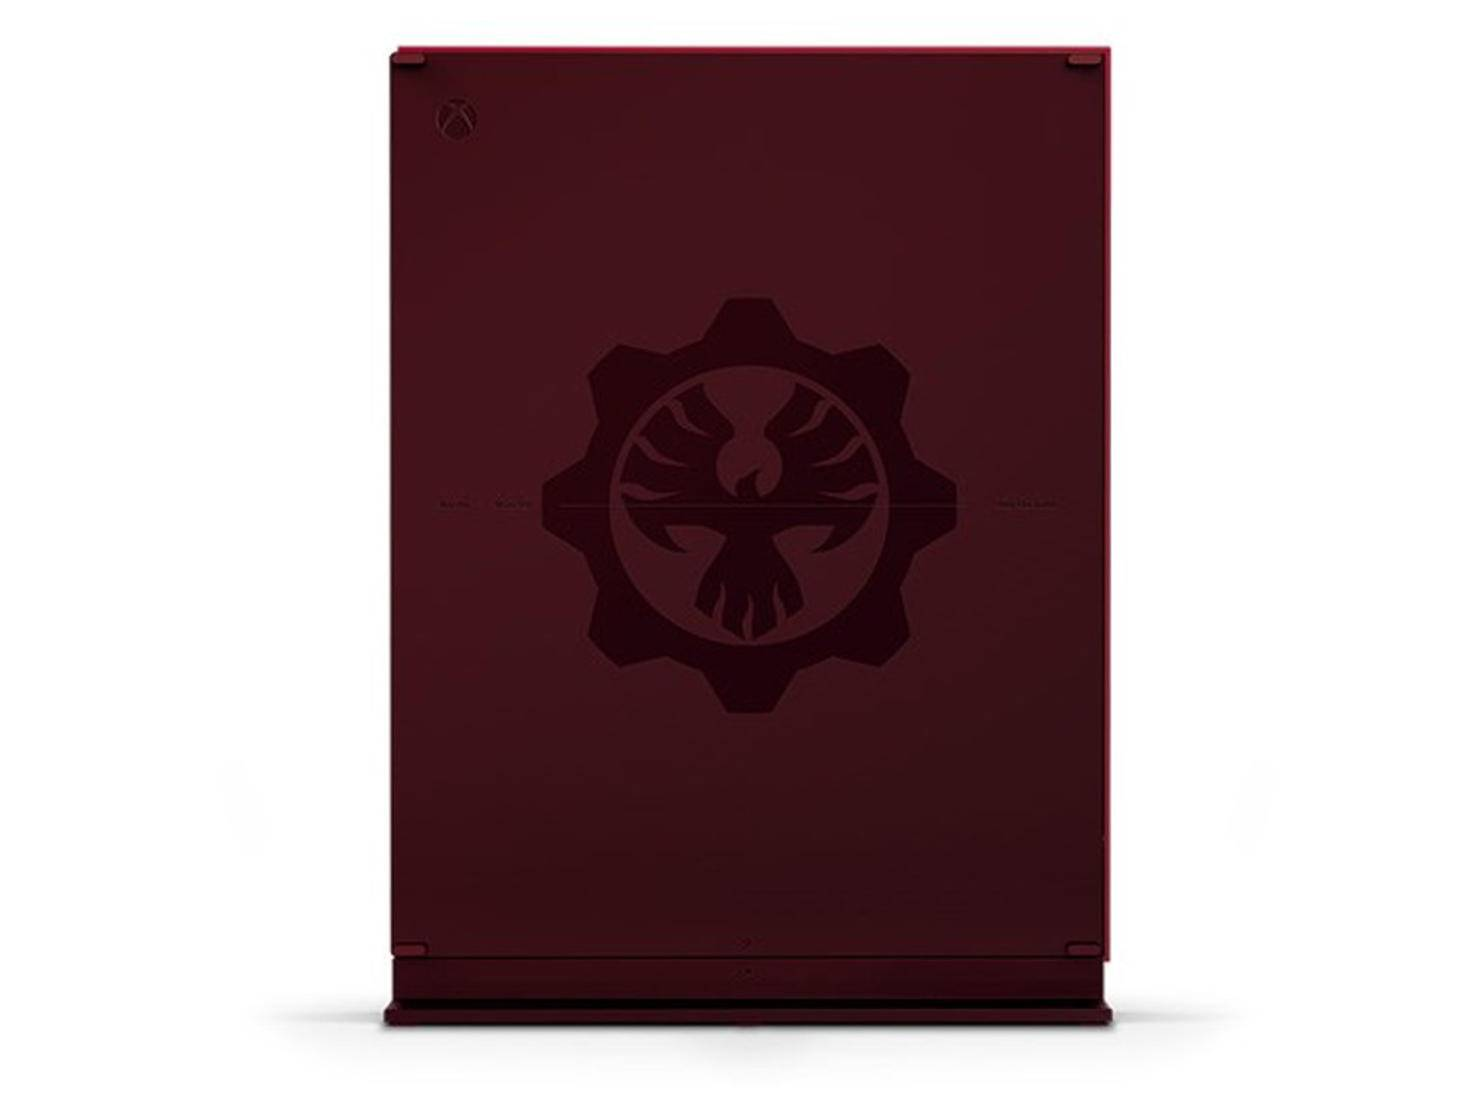 Xbox One S Gears of War 4 Limited Edition back